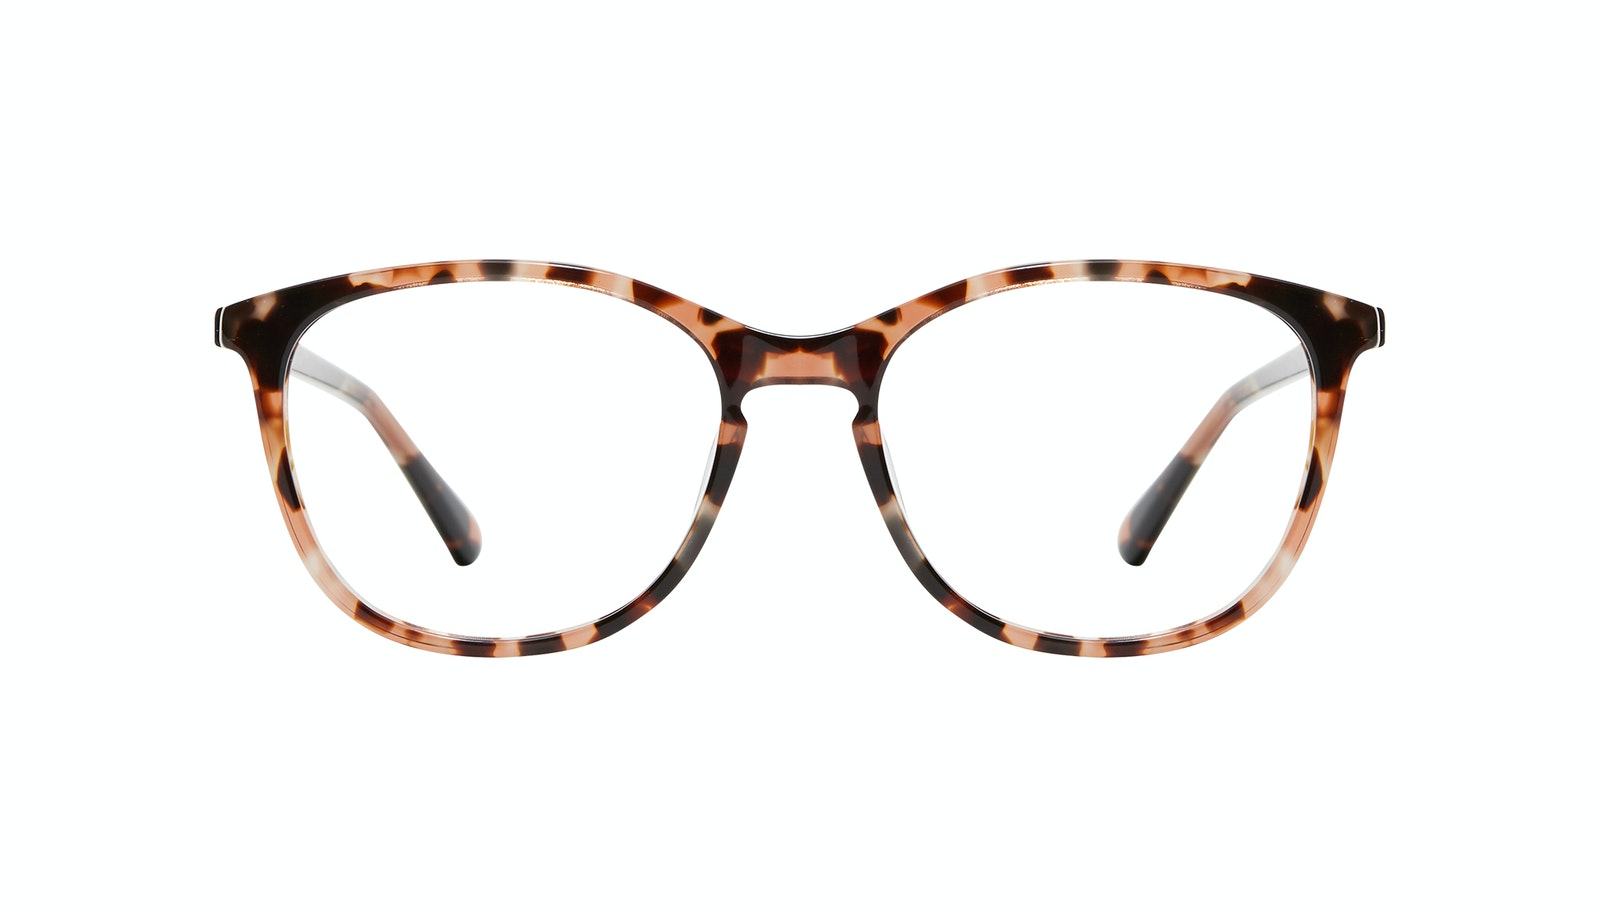 Affordable Fashion Glasses Rectangle Square Round Eyeglasses Women Nadine S Pink Tortoise